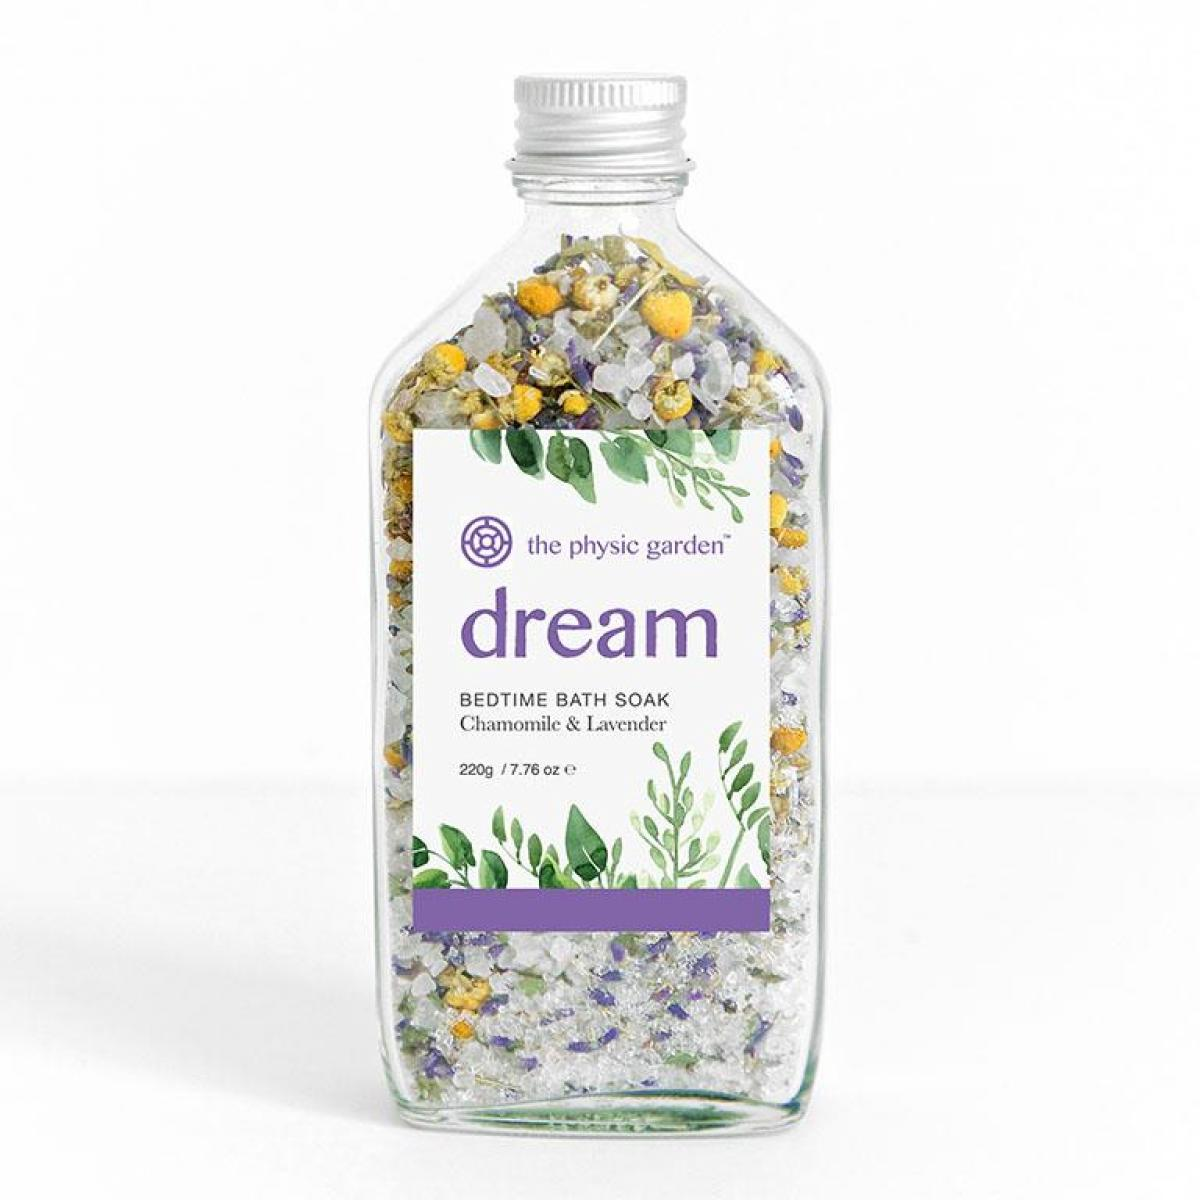 The Physic Garden Dream Bedtime Bath Soak - 220gm - Bath Salts - Throw Some Seeds - Australian gardening gifts and eco products online!